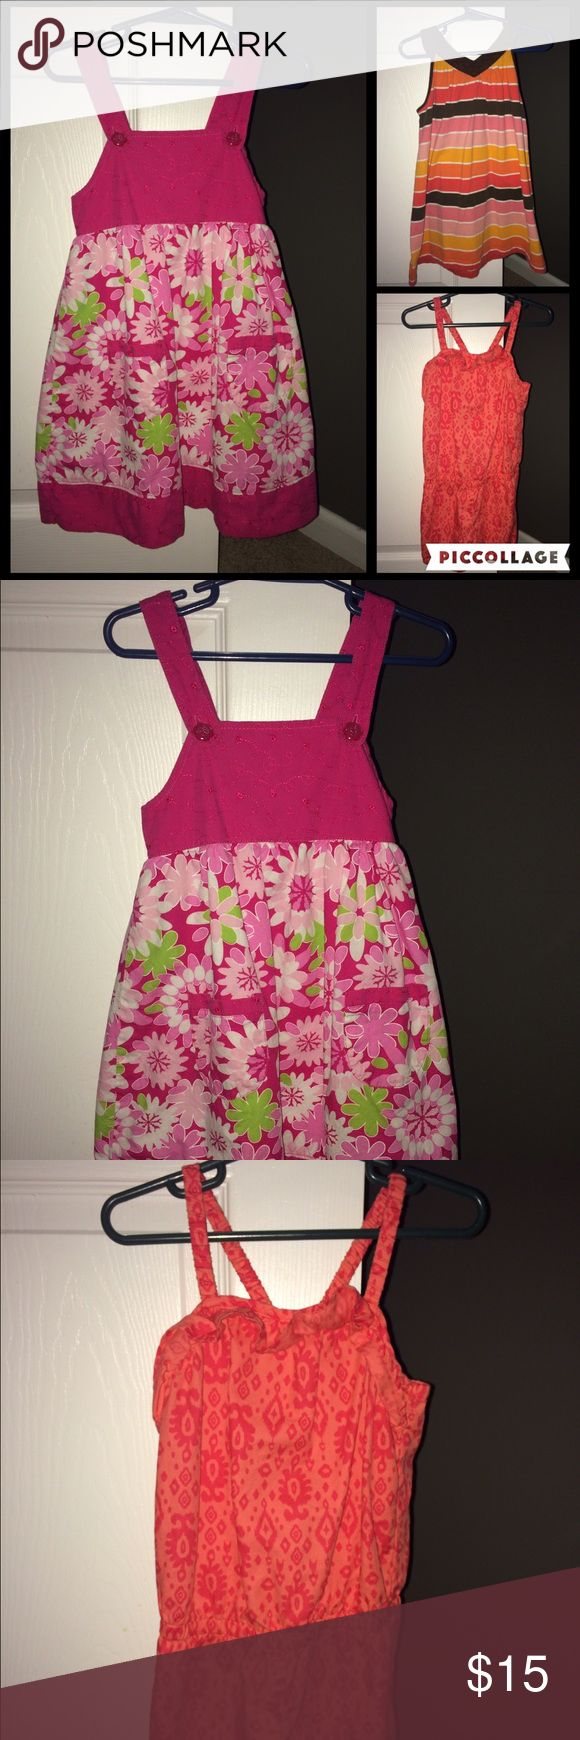 Two -4t dresses and 4t romper. Good condition. The orange outfit is a romper.  The other two are dresses. Dresses